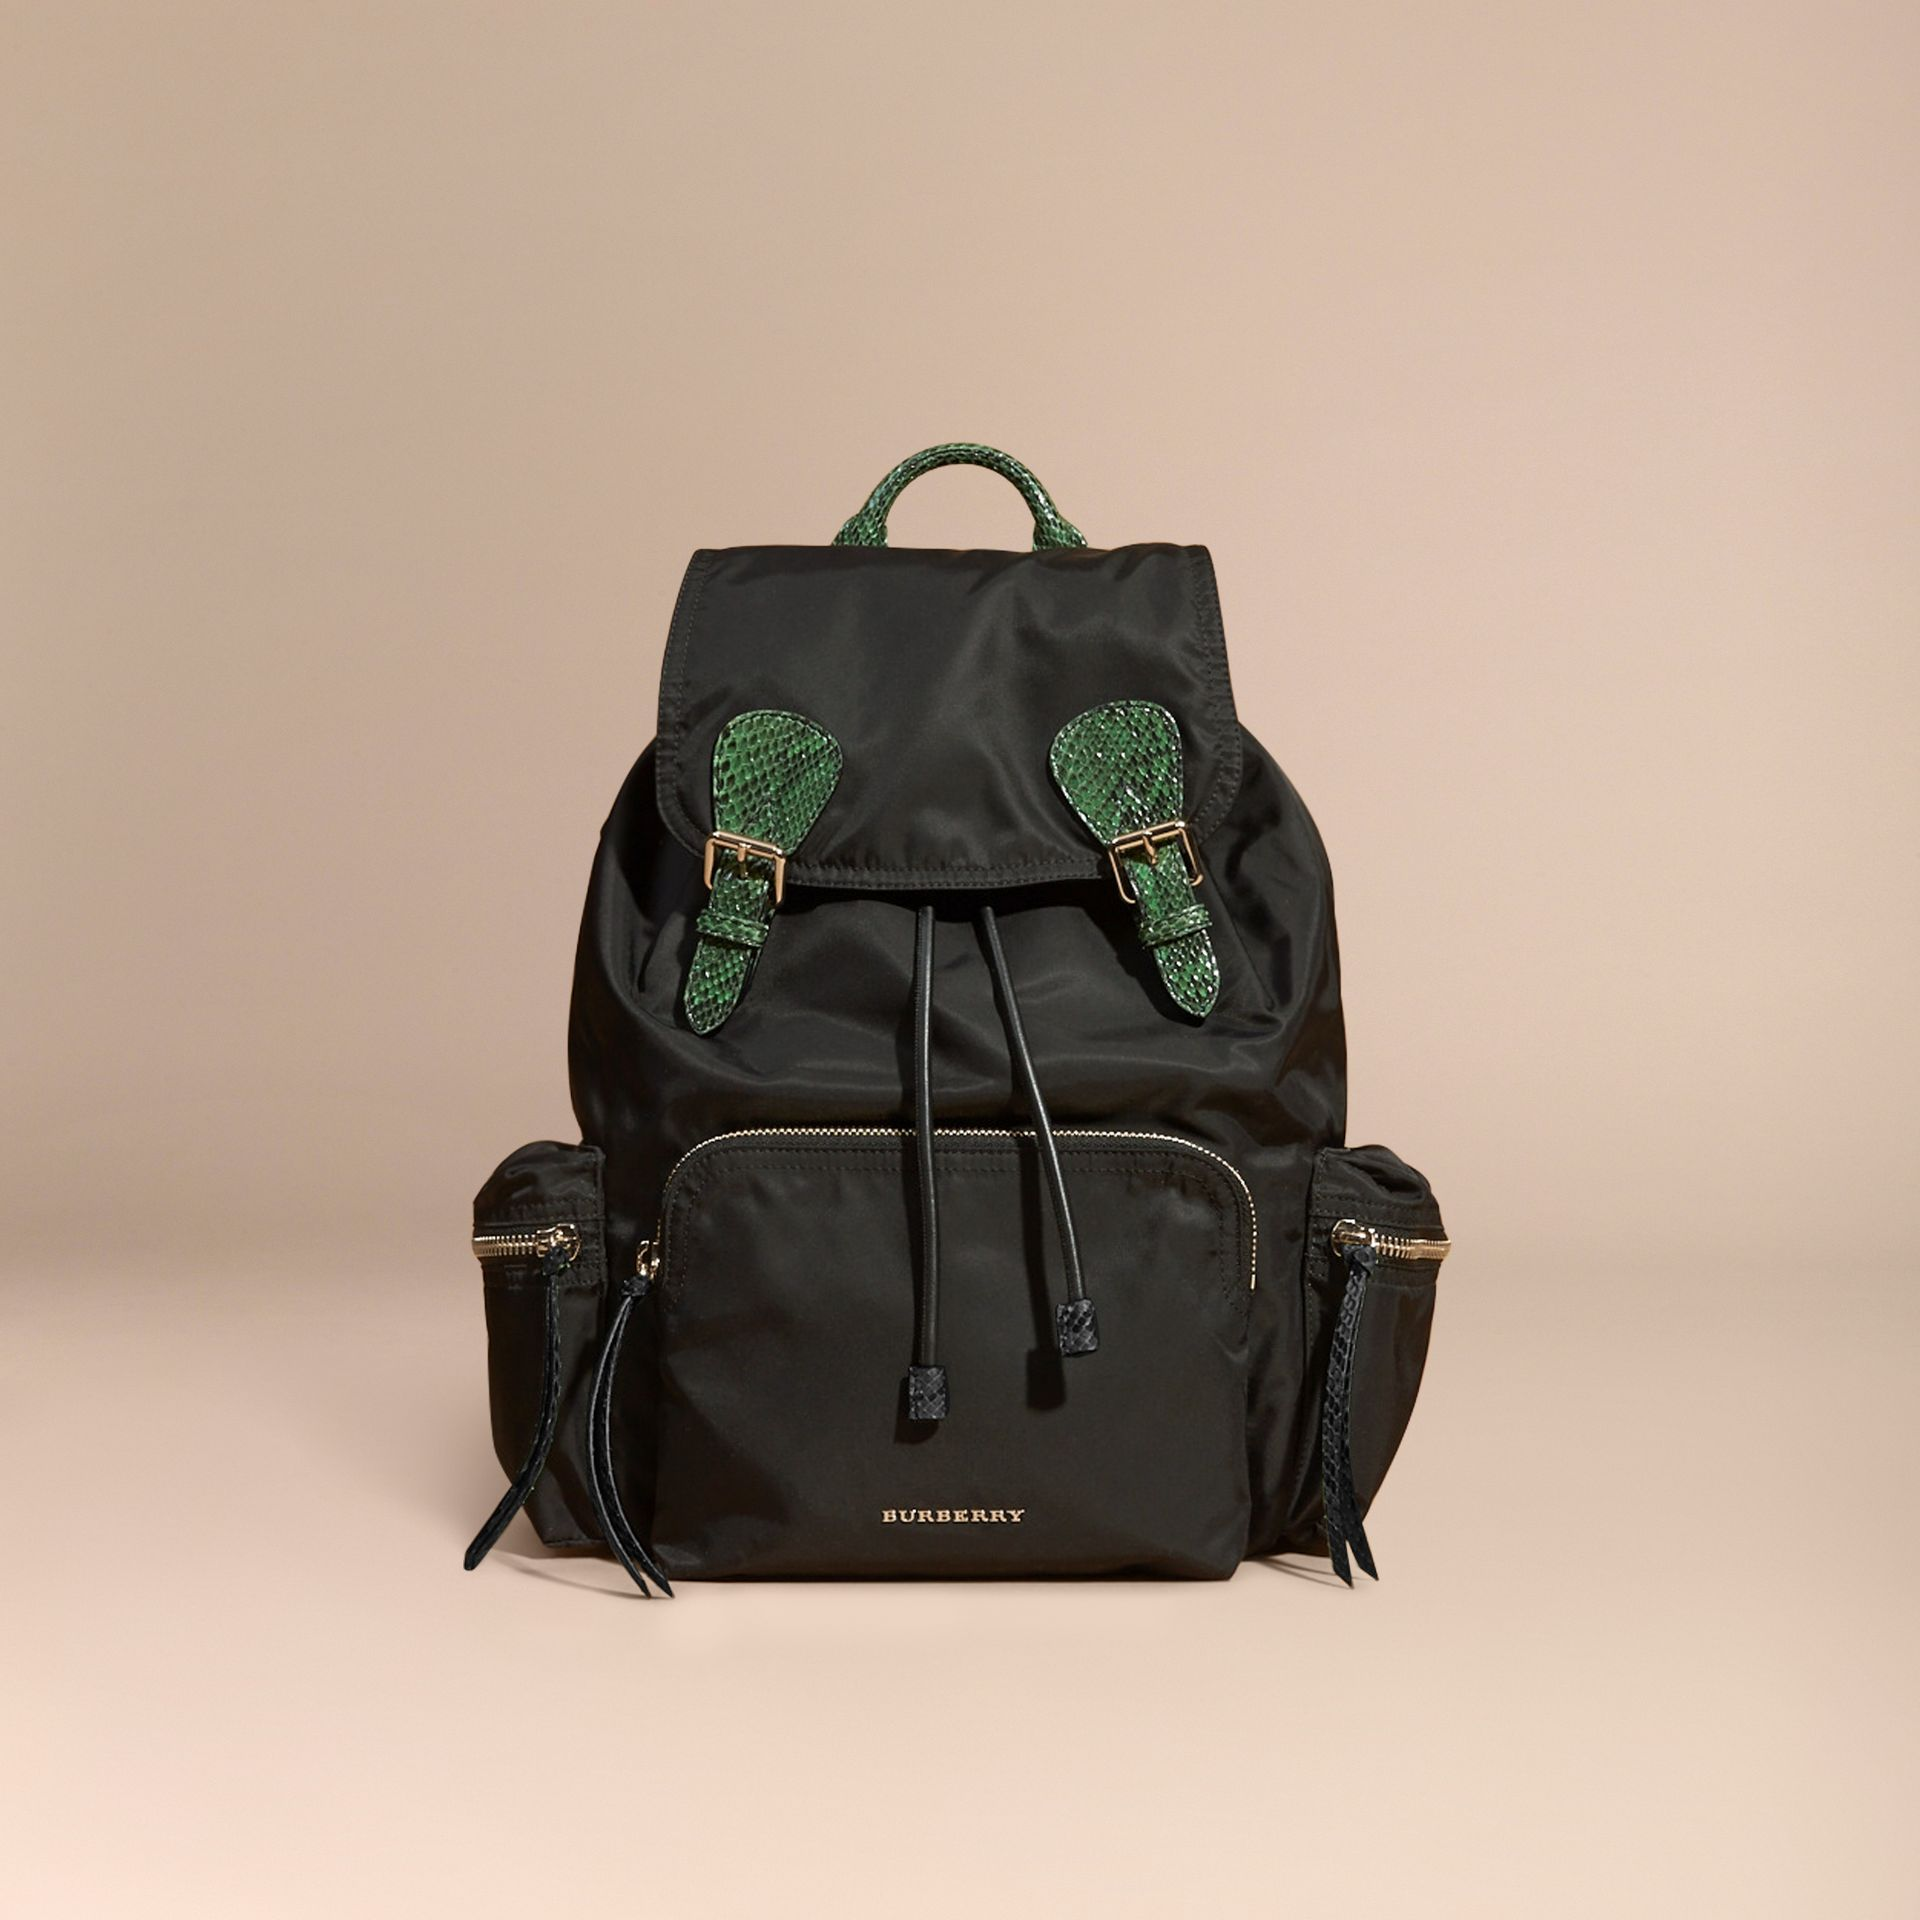 Zaino The Rucksack grande in nylon tecnico e pelle di serpente Nero/verde Brillante - immagine della galleria 8